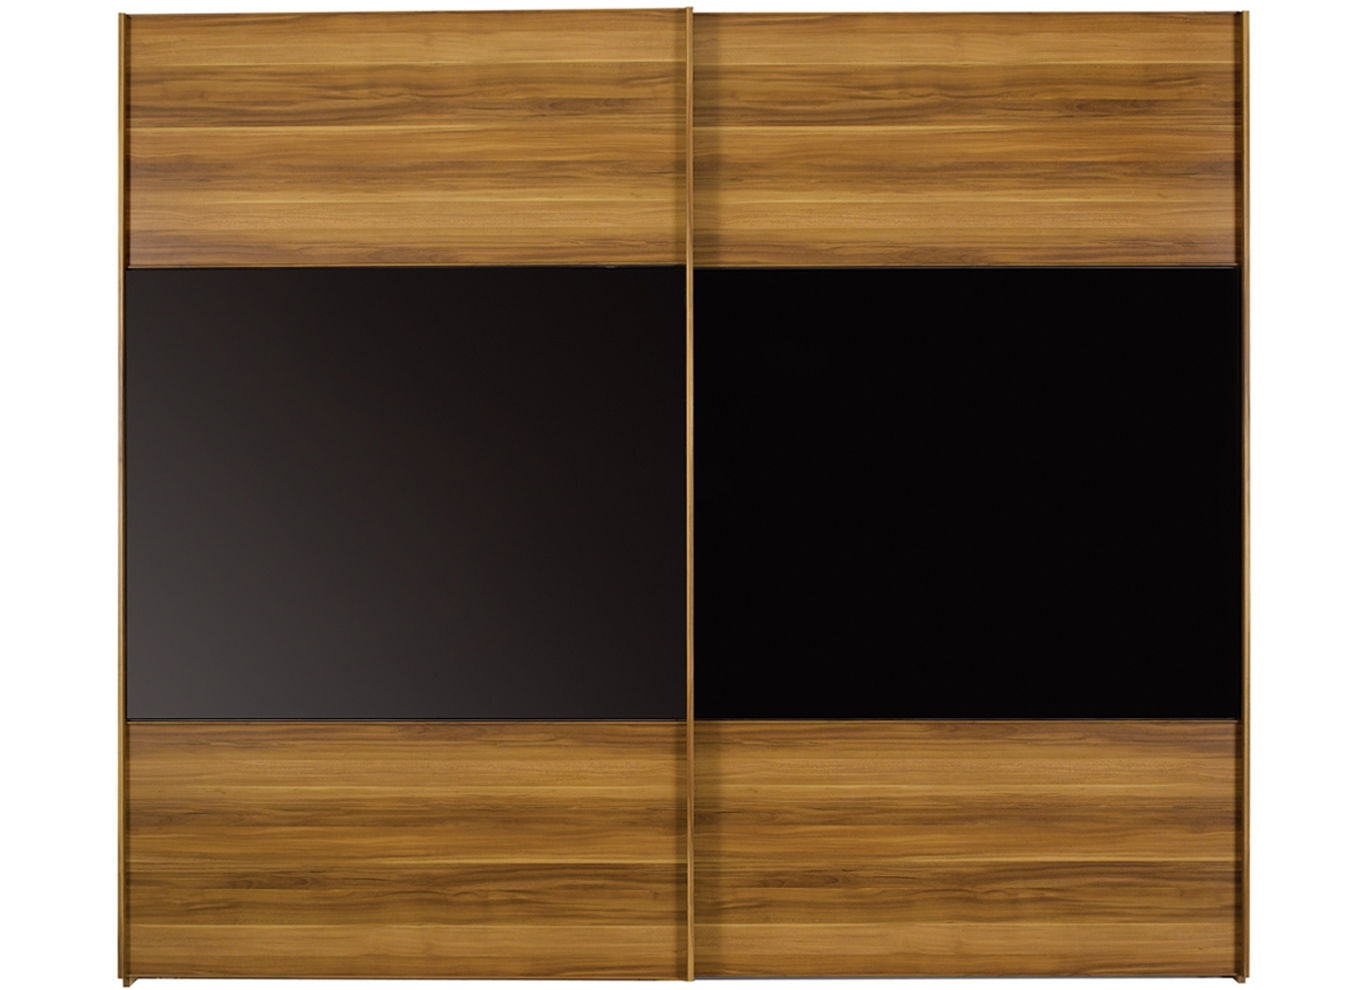 Berkeley Black Sliding Wardrobe – Extra Large For Preferred Black Sliding Wardrobes (View 11 of 15)